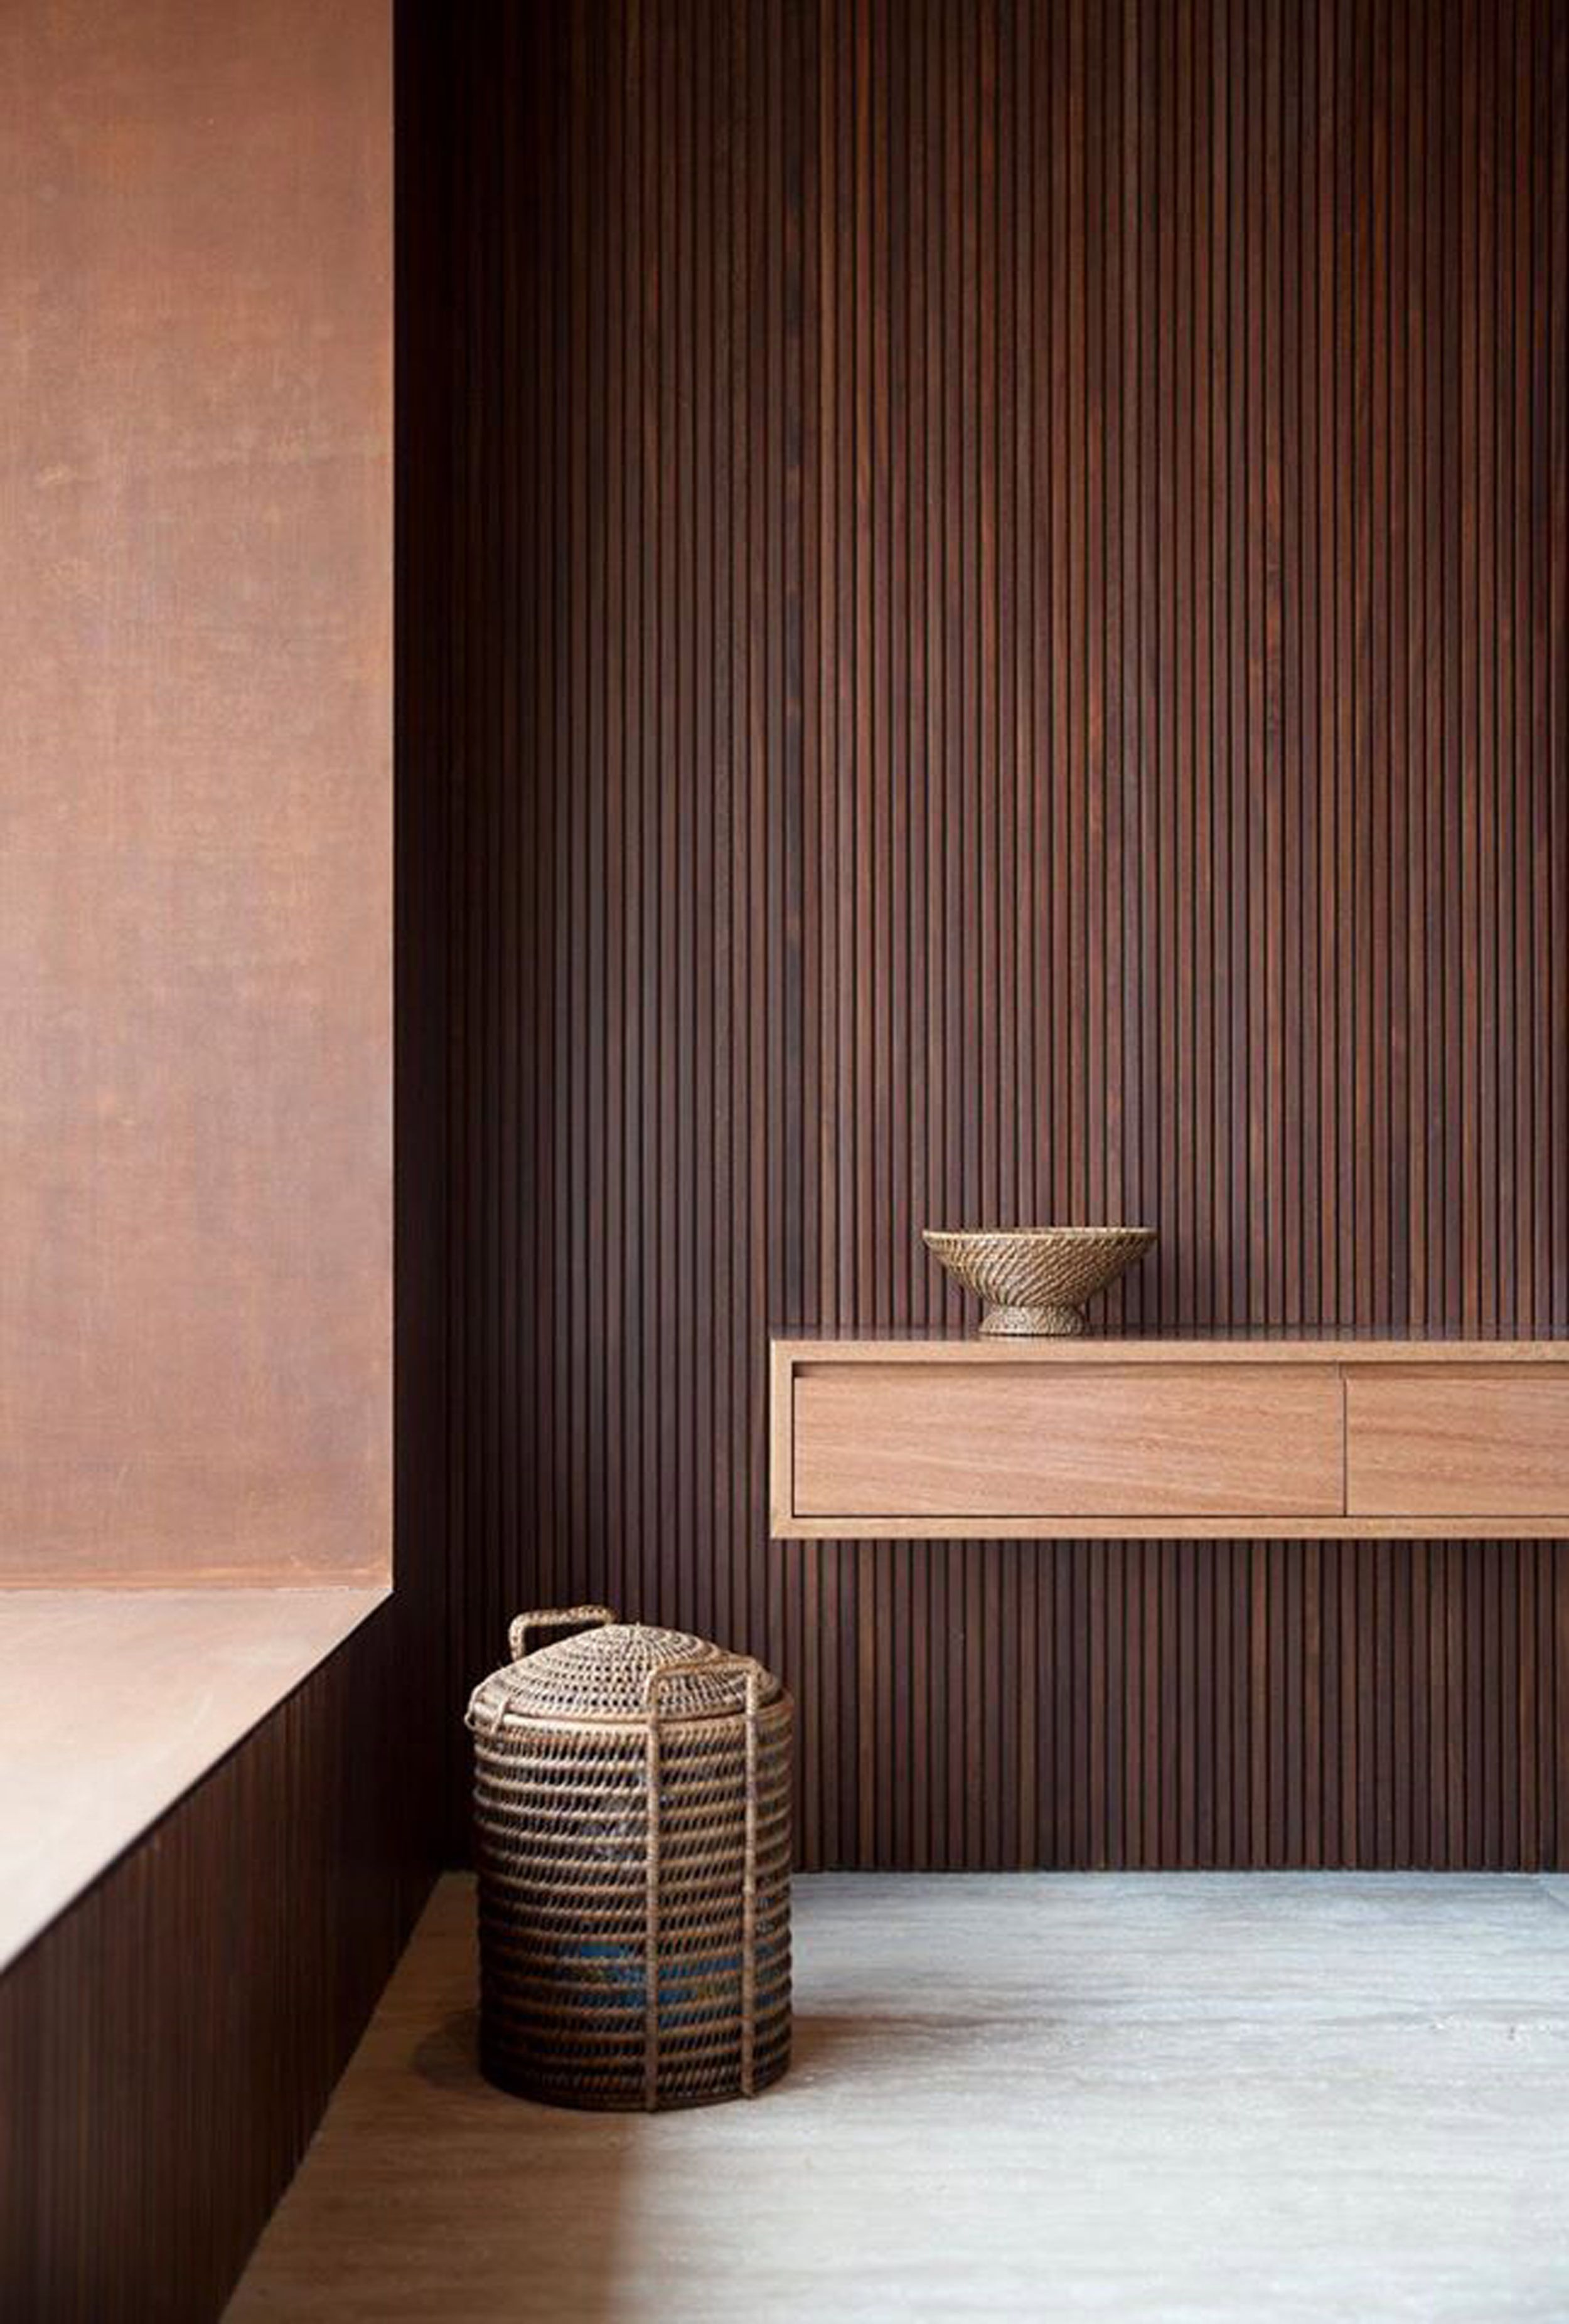 How to add character to basic architecture unfinished - Architectural wood interior wall panels ...